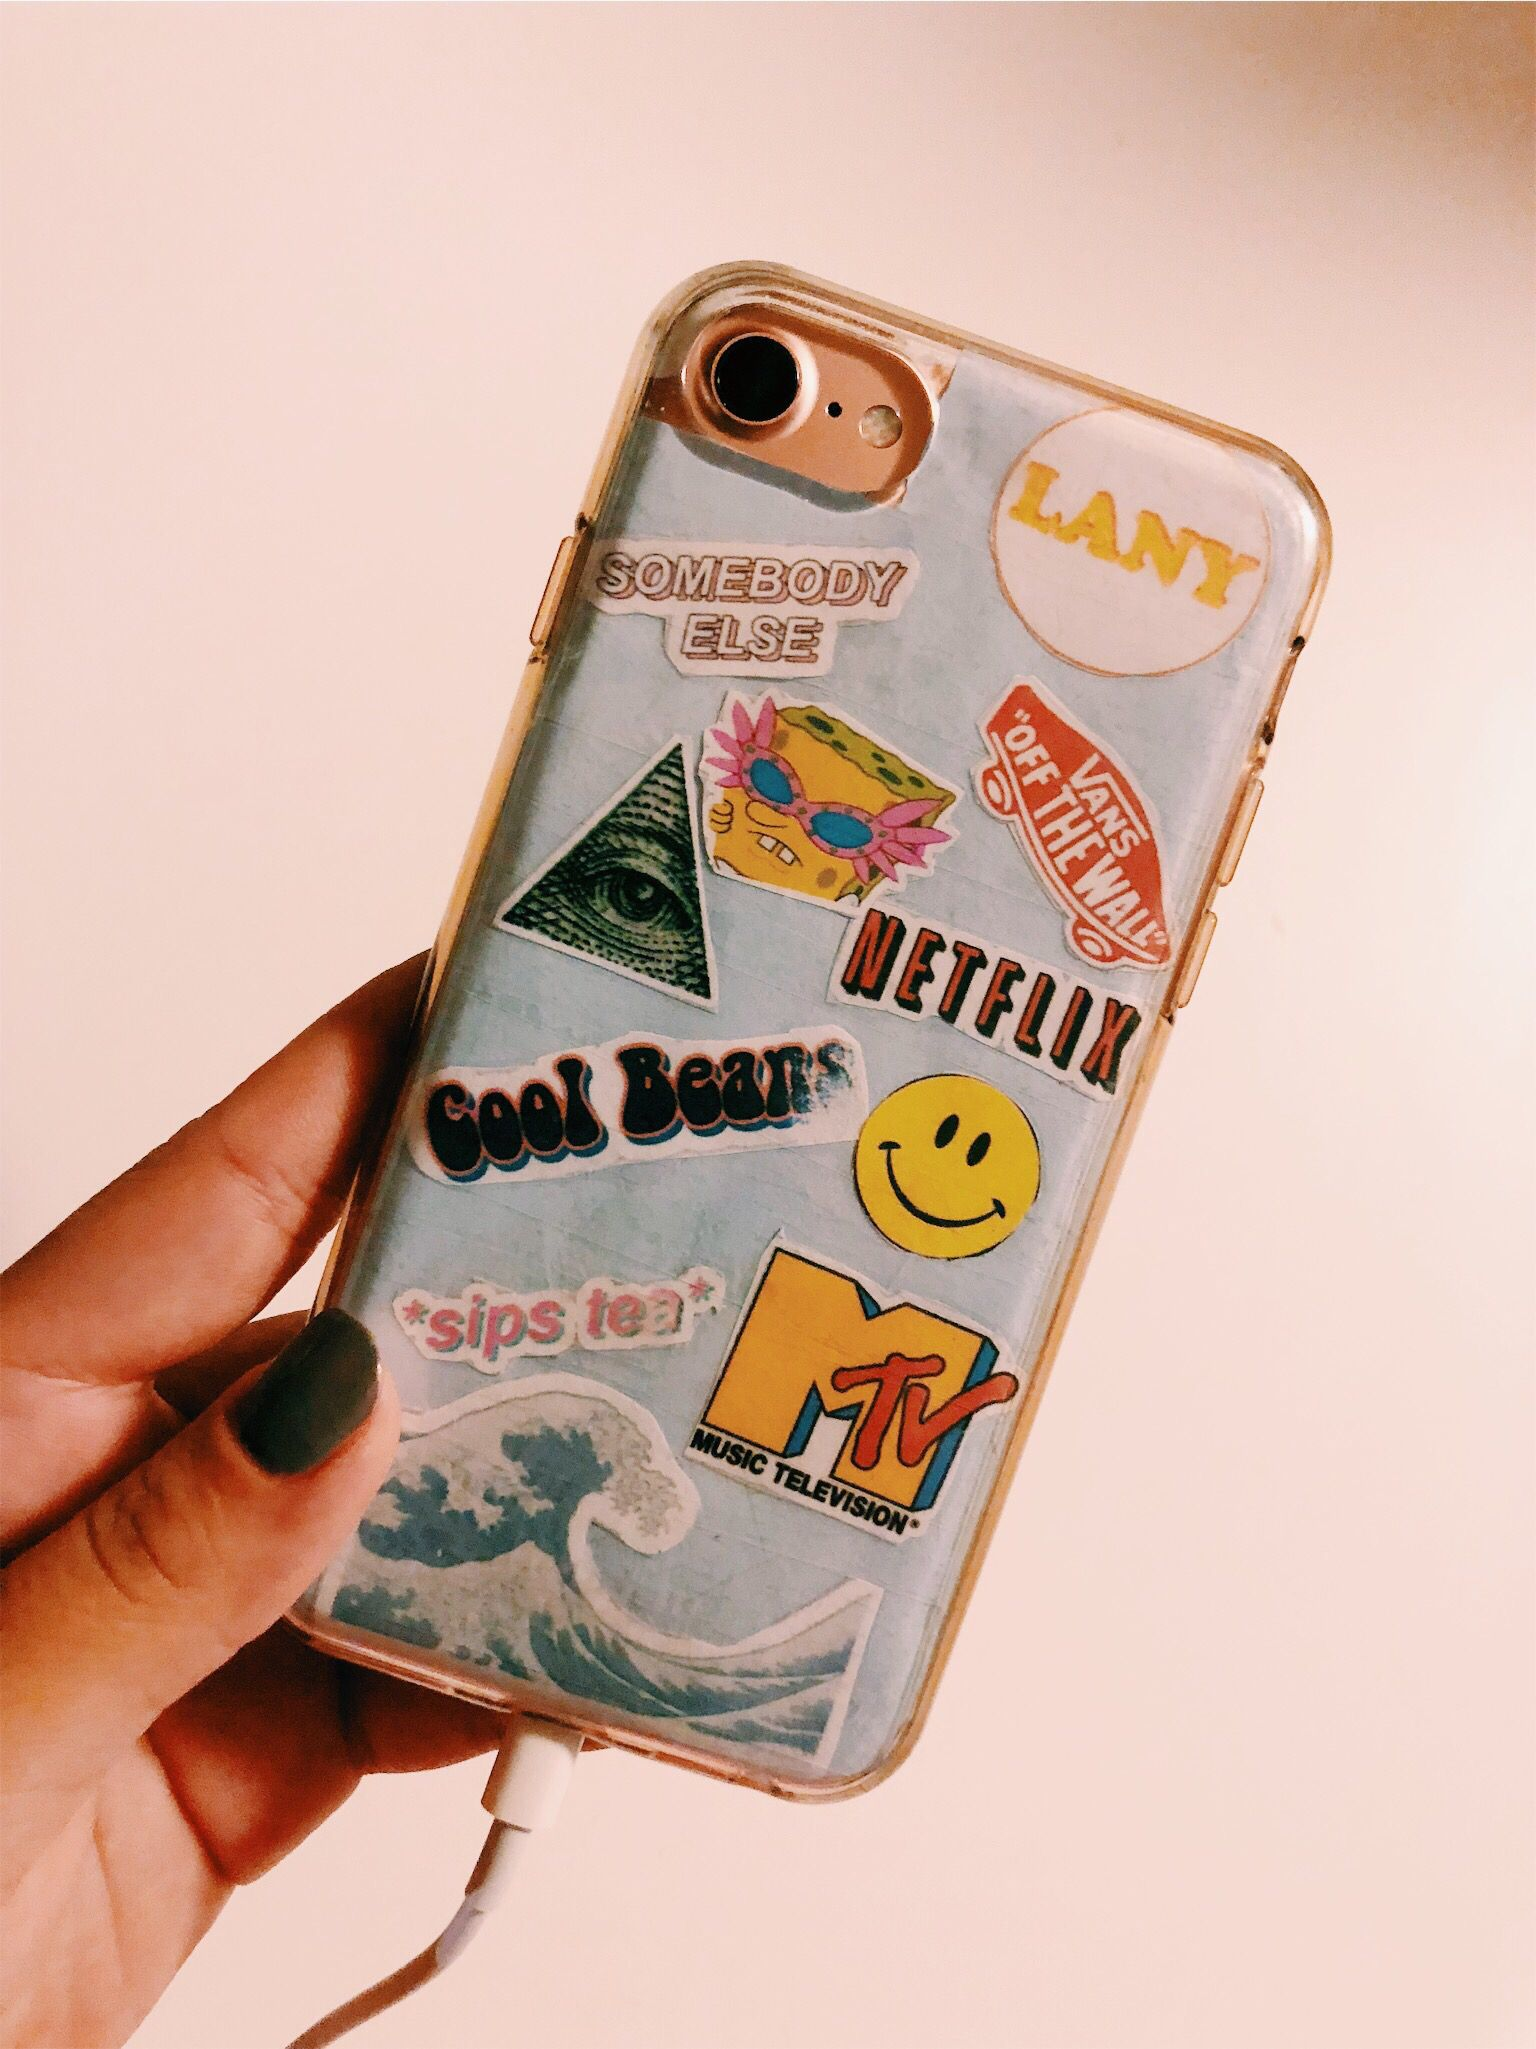 Pin by 彡 𝓑𝓱𝓪𝓿𝔂𝓪 𝓐 彡 on phone cases in 2019   Phone cases ...